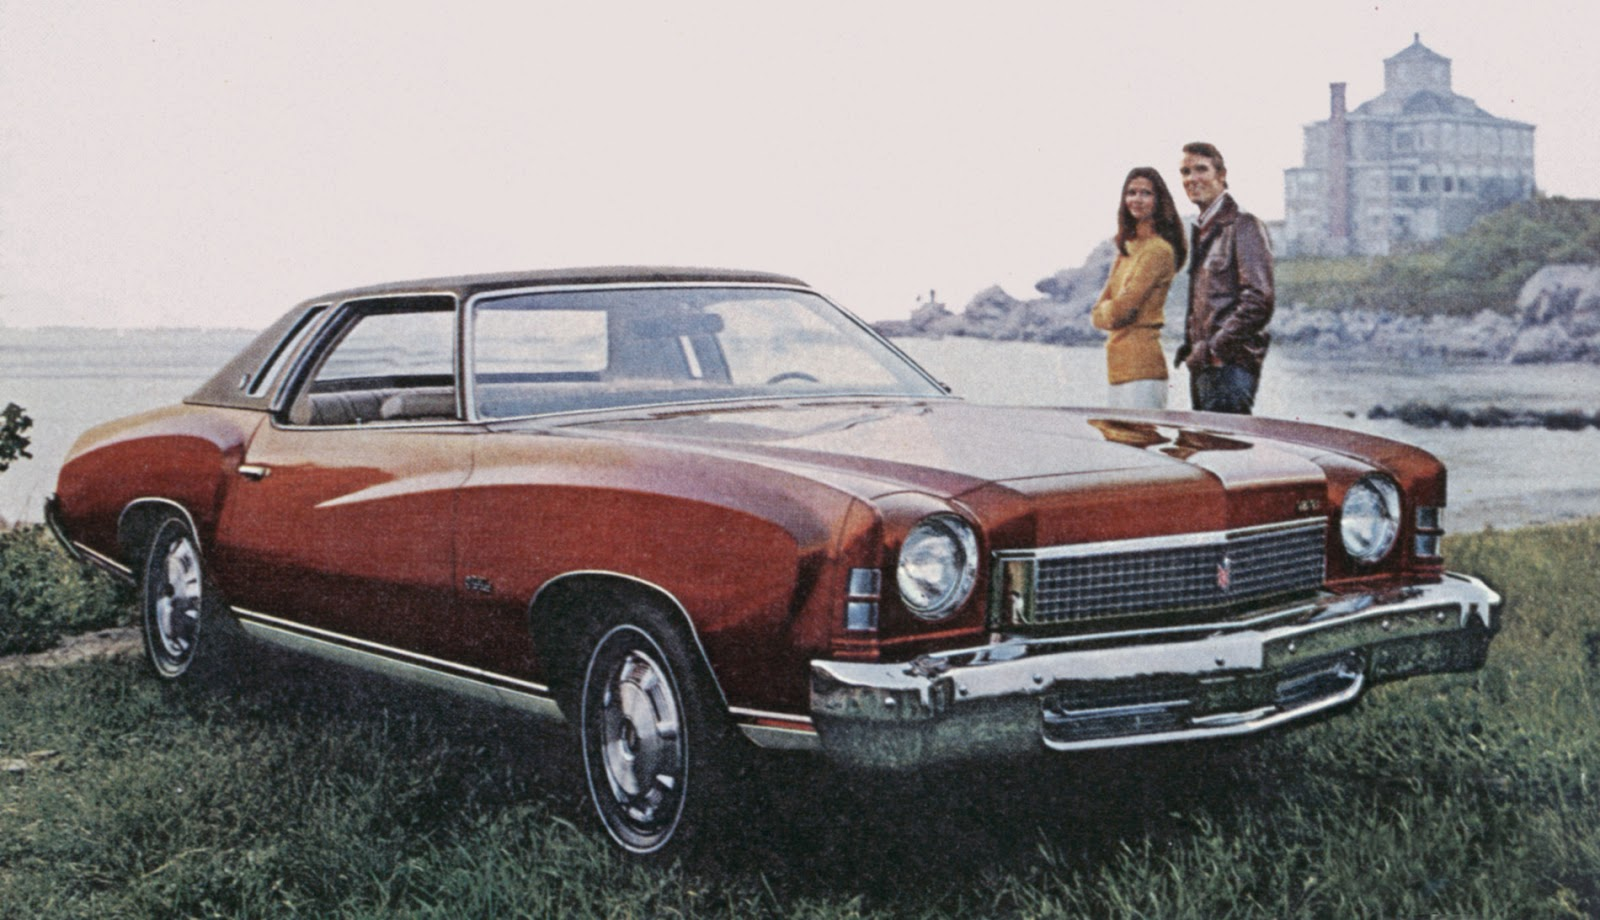 hight resolution of in 1973 monte carlo gained its own identity with sculpted fenders and elaborate grilles